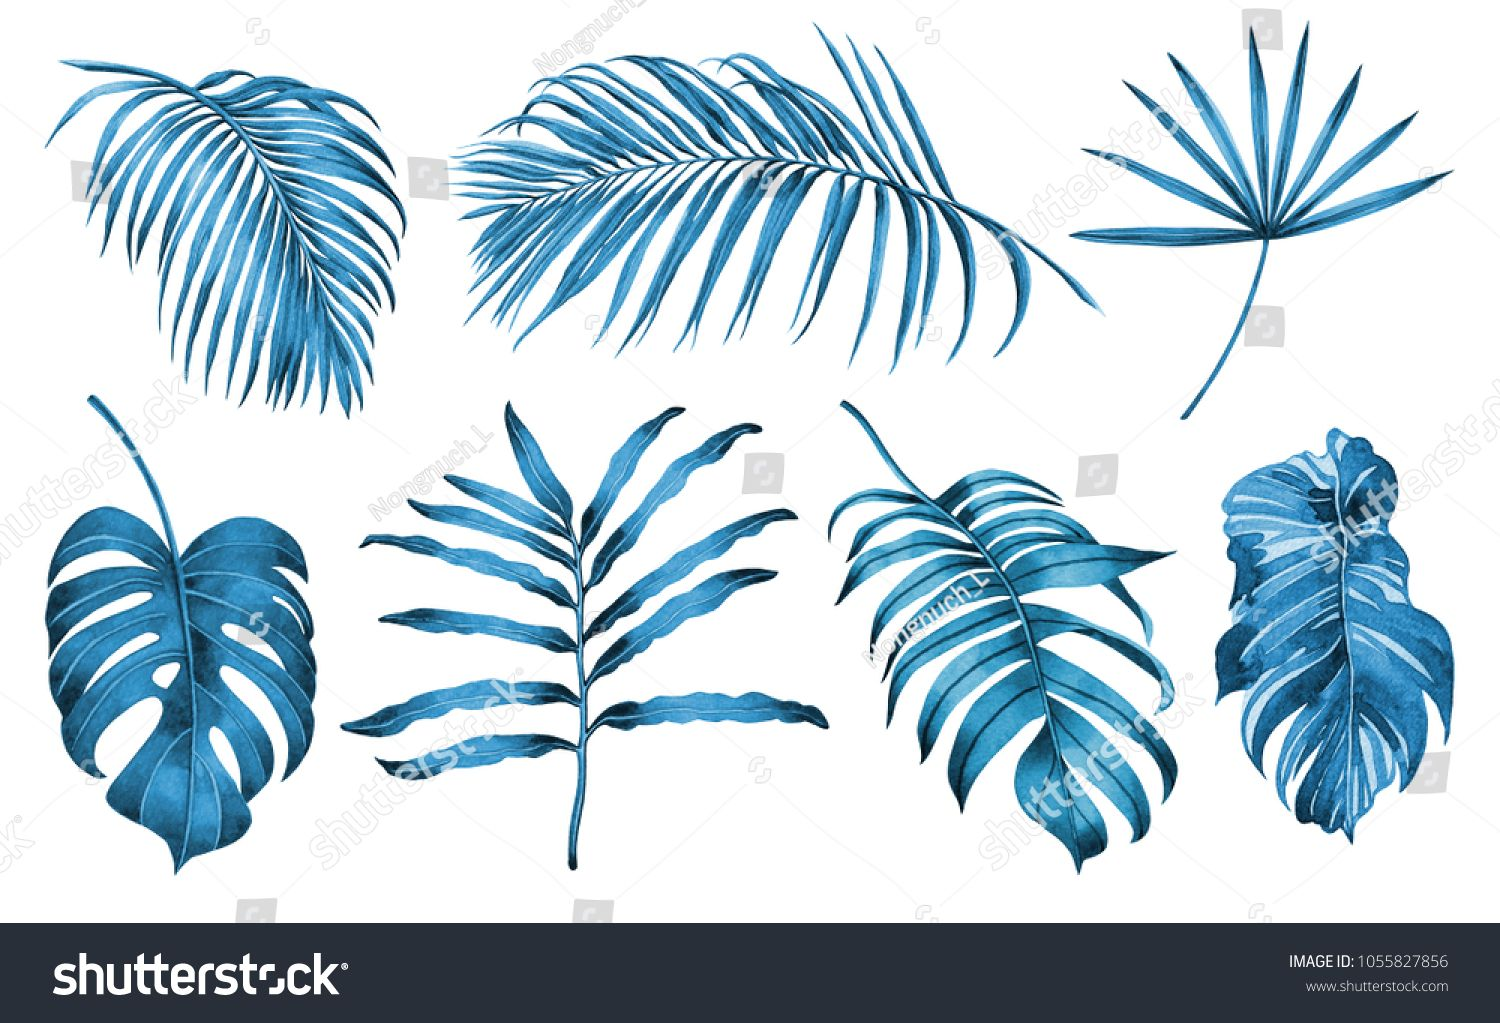 Watercolor Painting Blue And White Set Of Coconut Palm Leaf